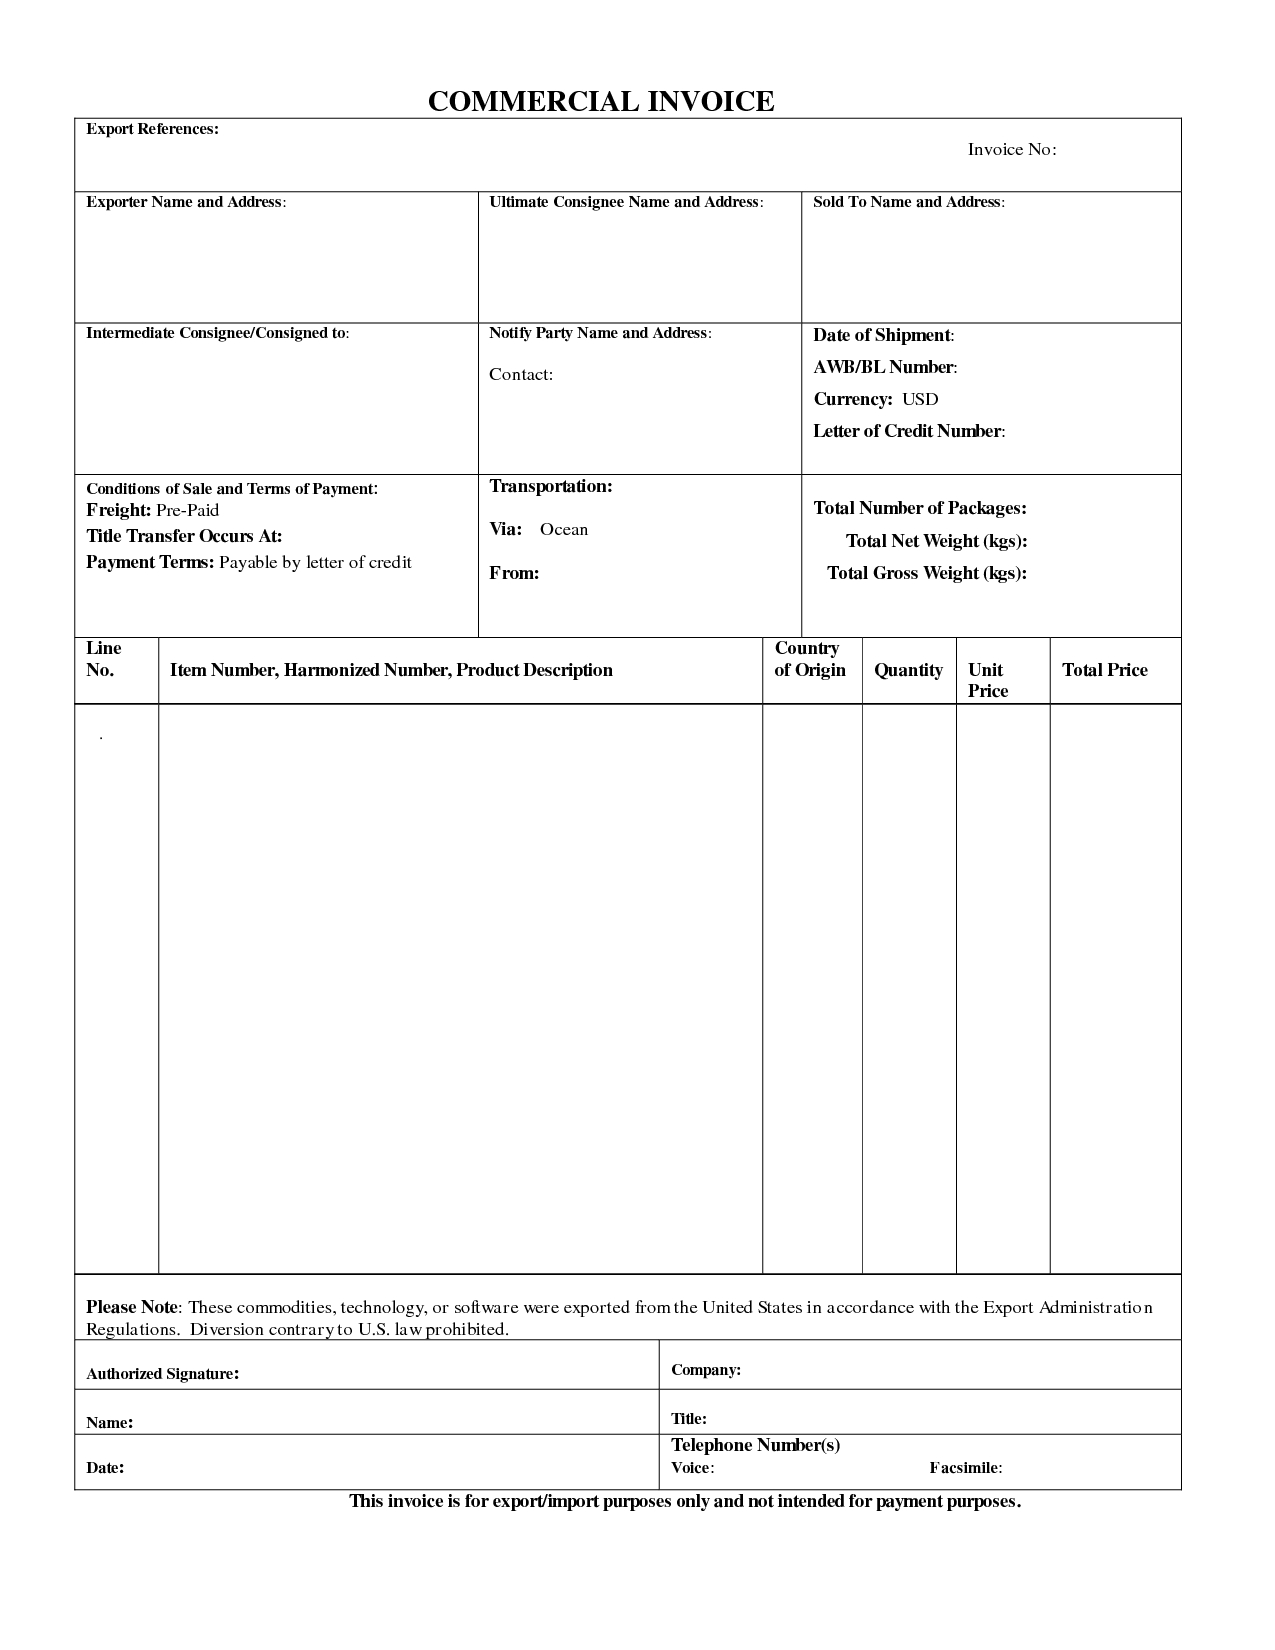 commercial invoice export 19 best photos of standard commercial invoice form blank 1275 X 1650